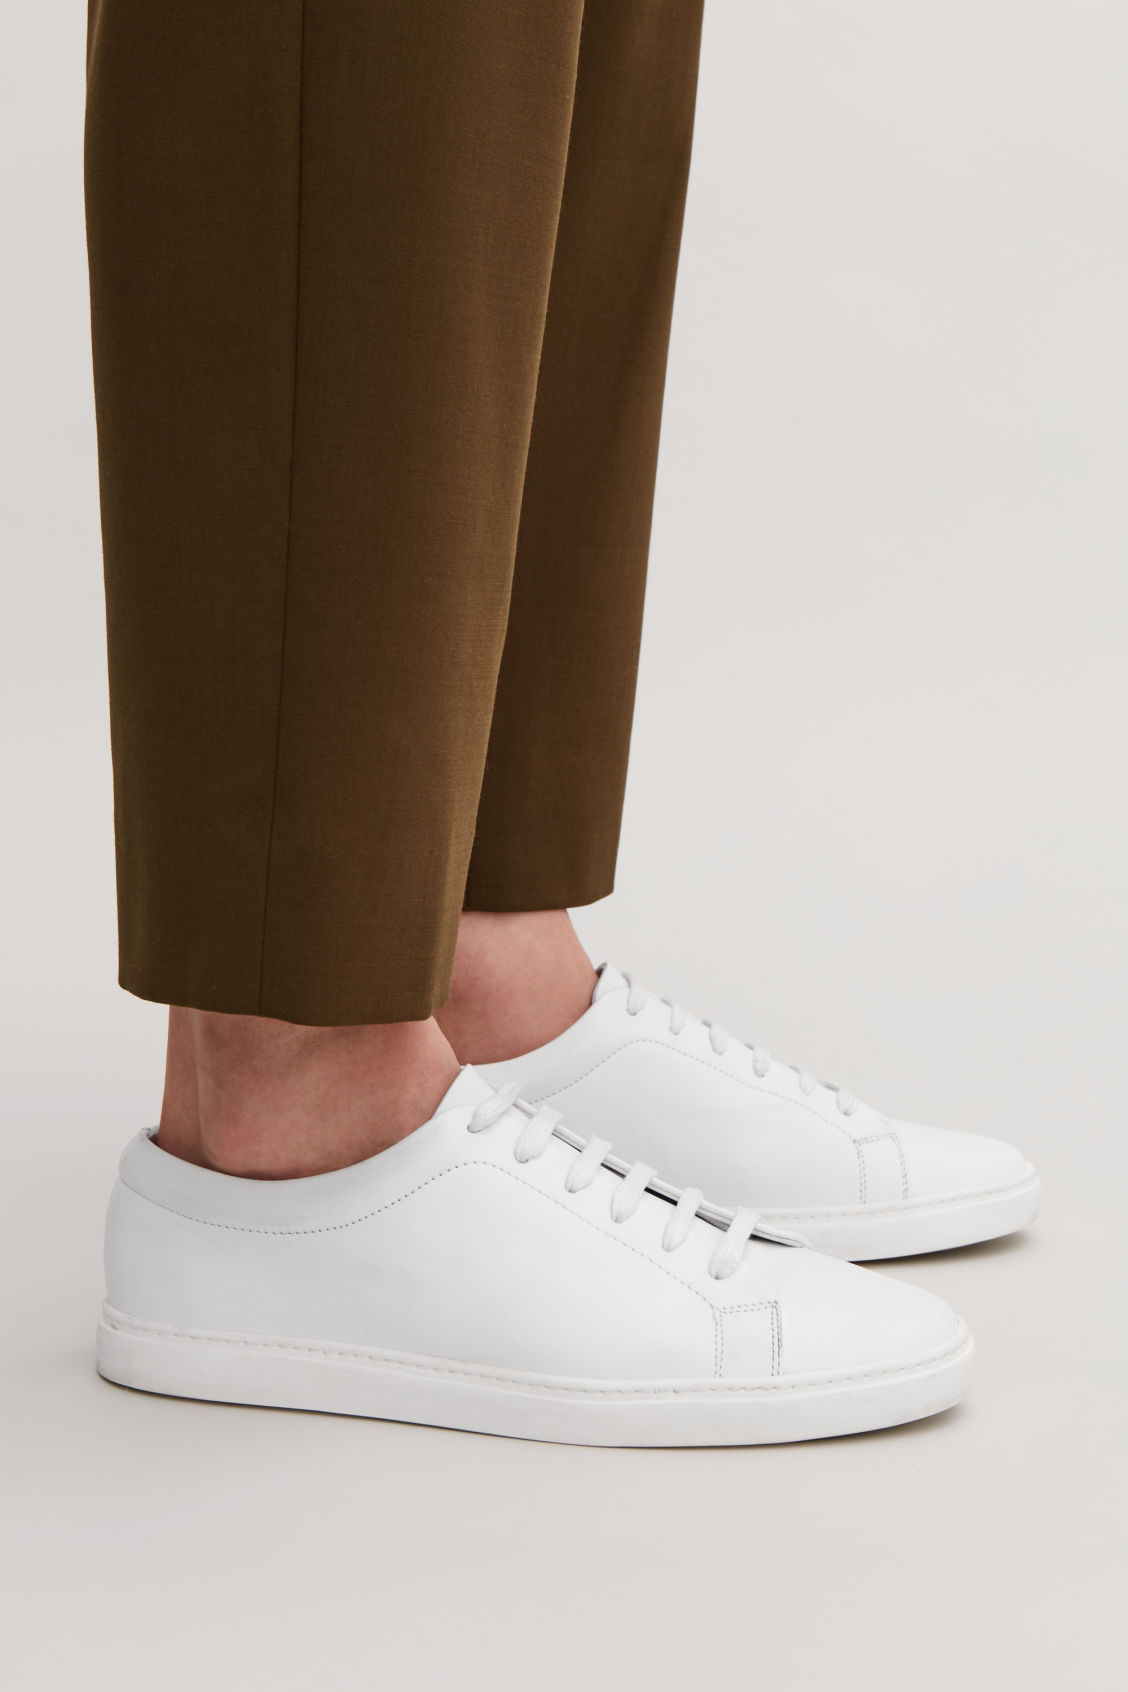 Detailed image of Cos slim-sole lace-up sneakers in white